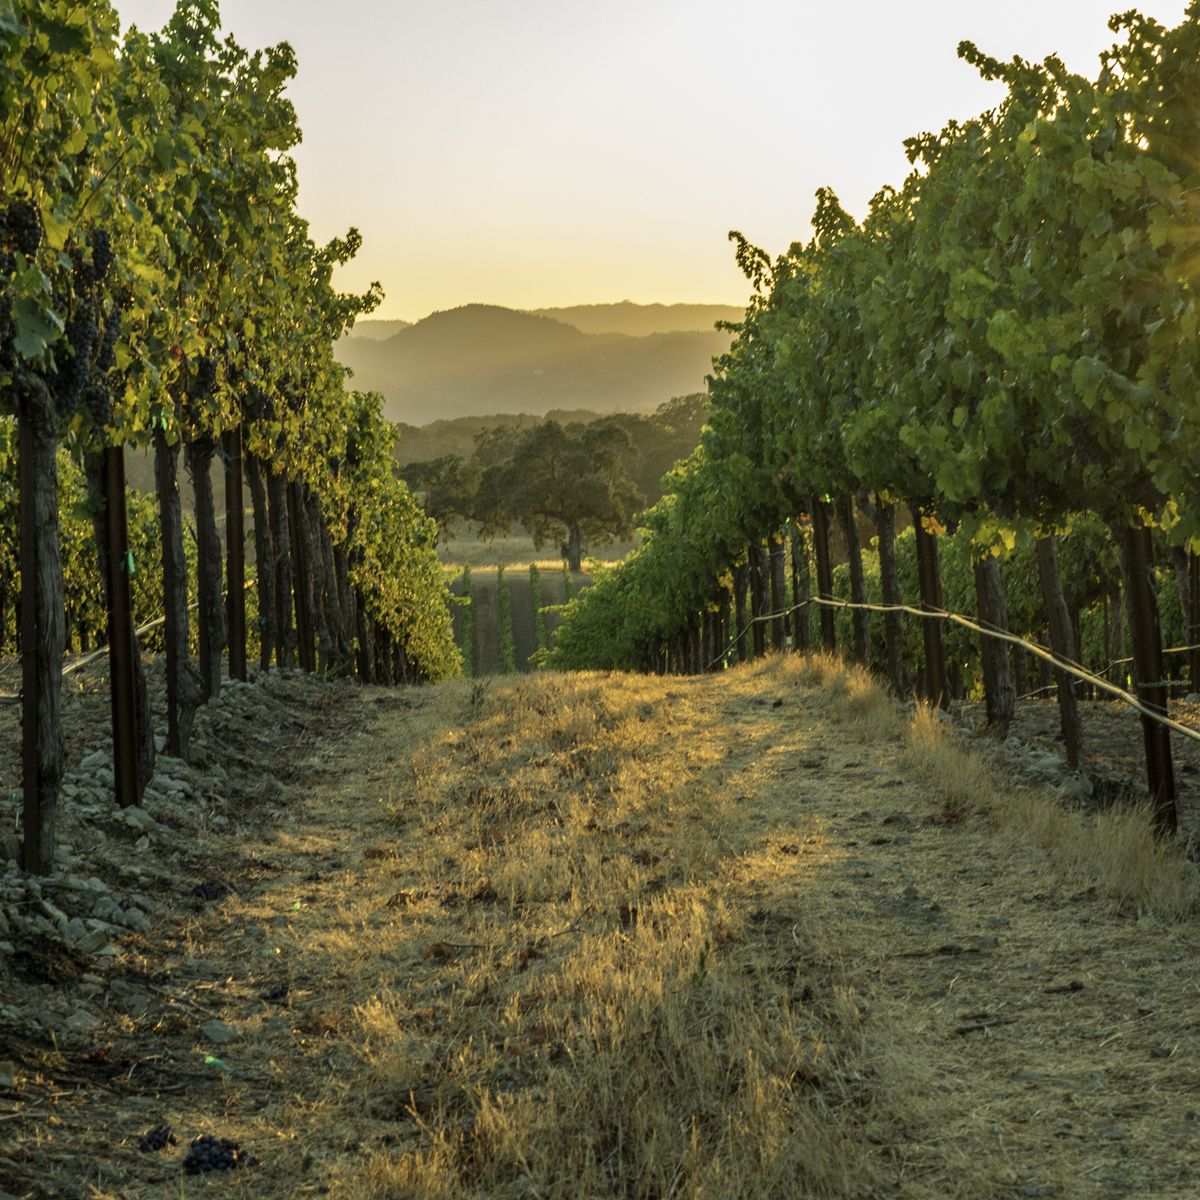 The Best Time to Visit California's Wine Country